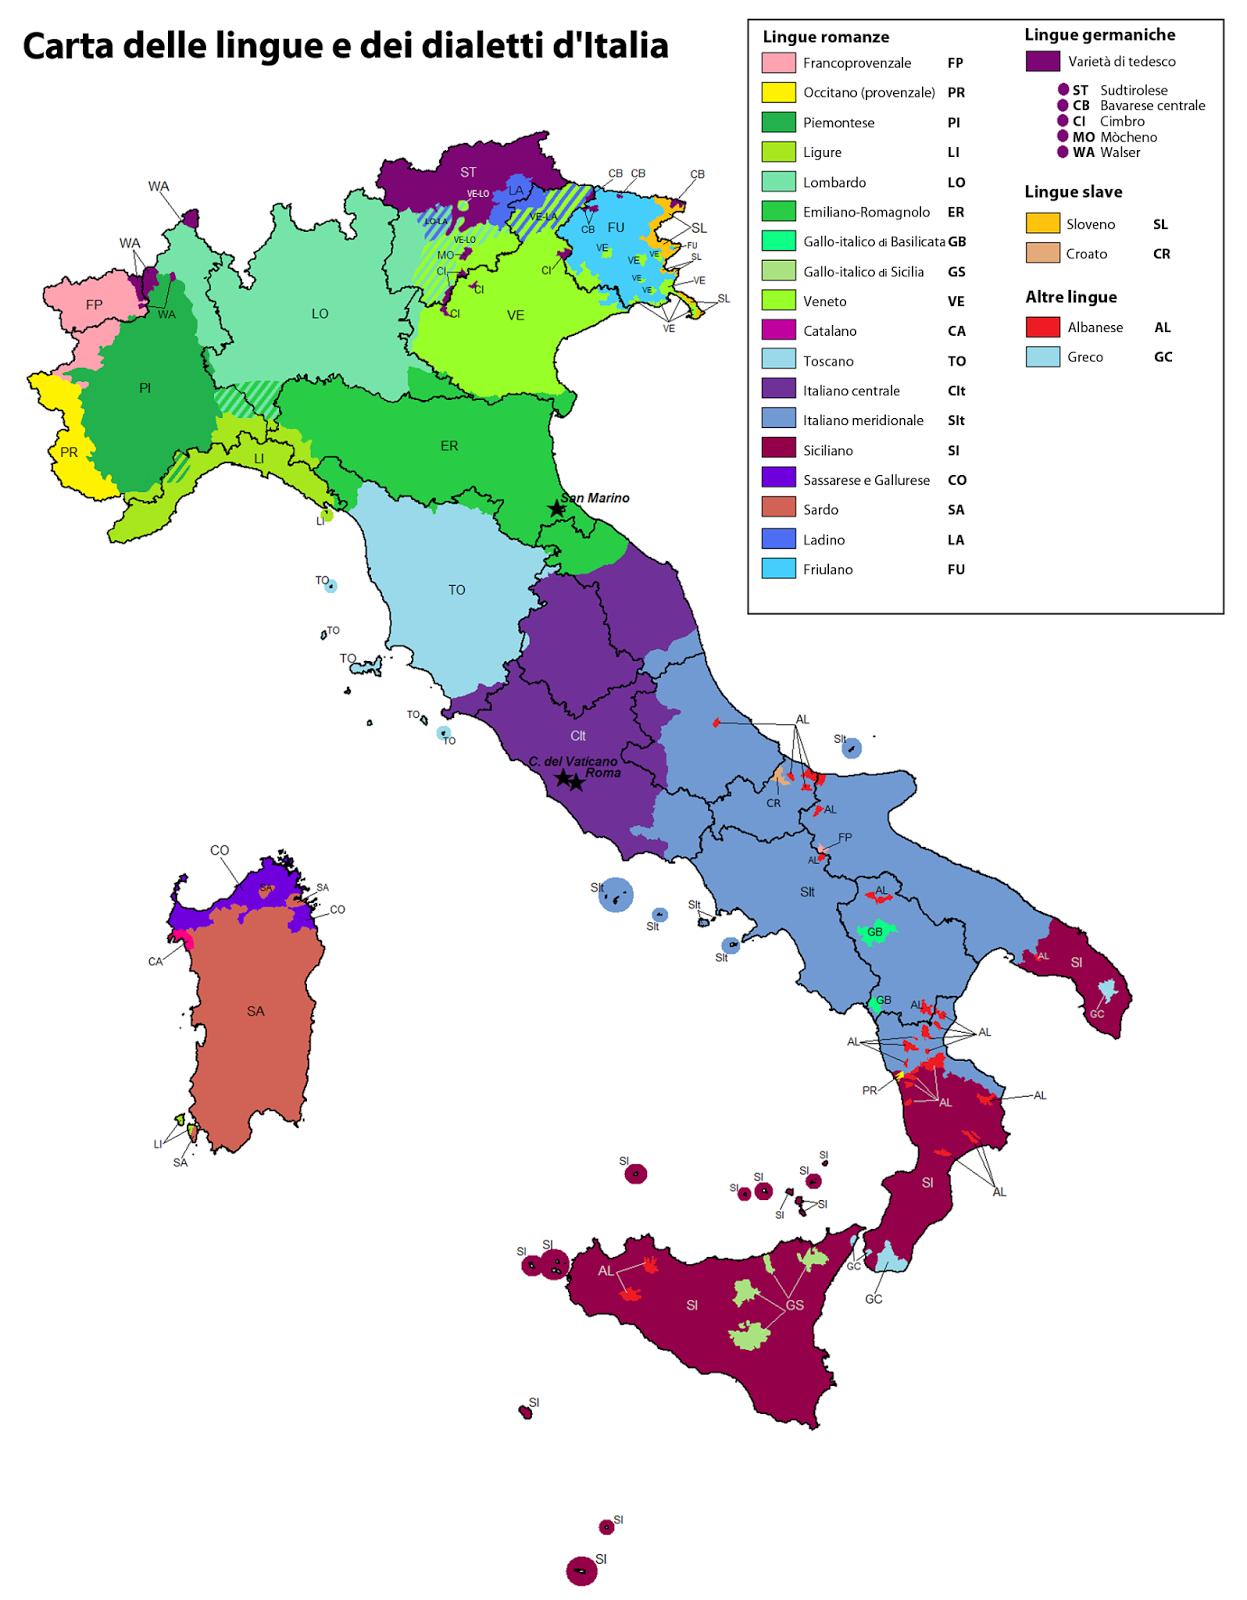 Various languages spoken in Italy